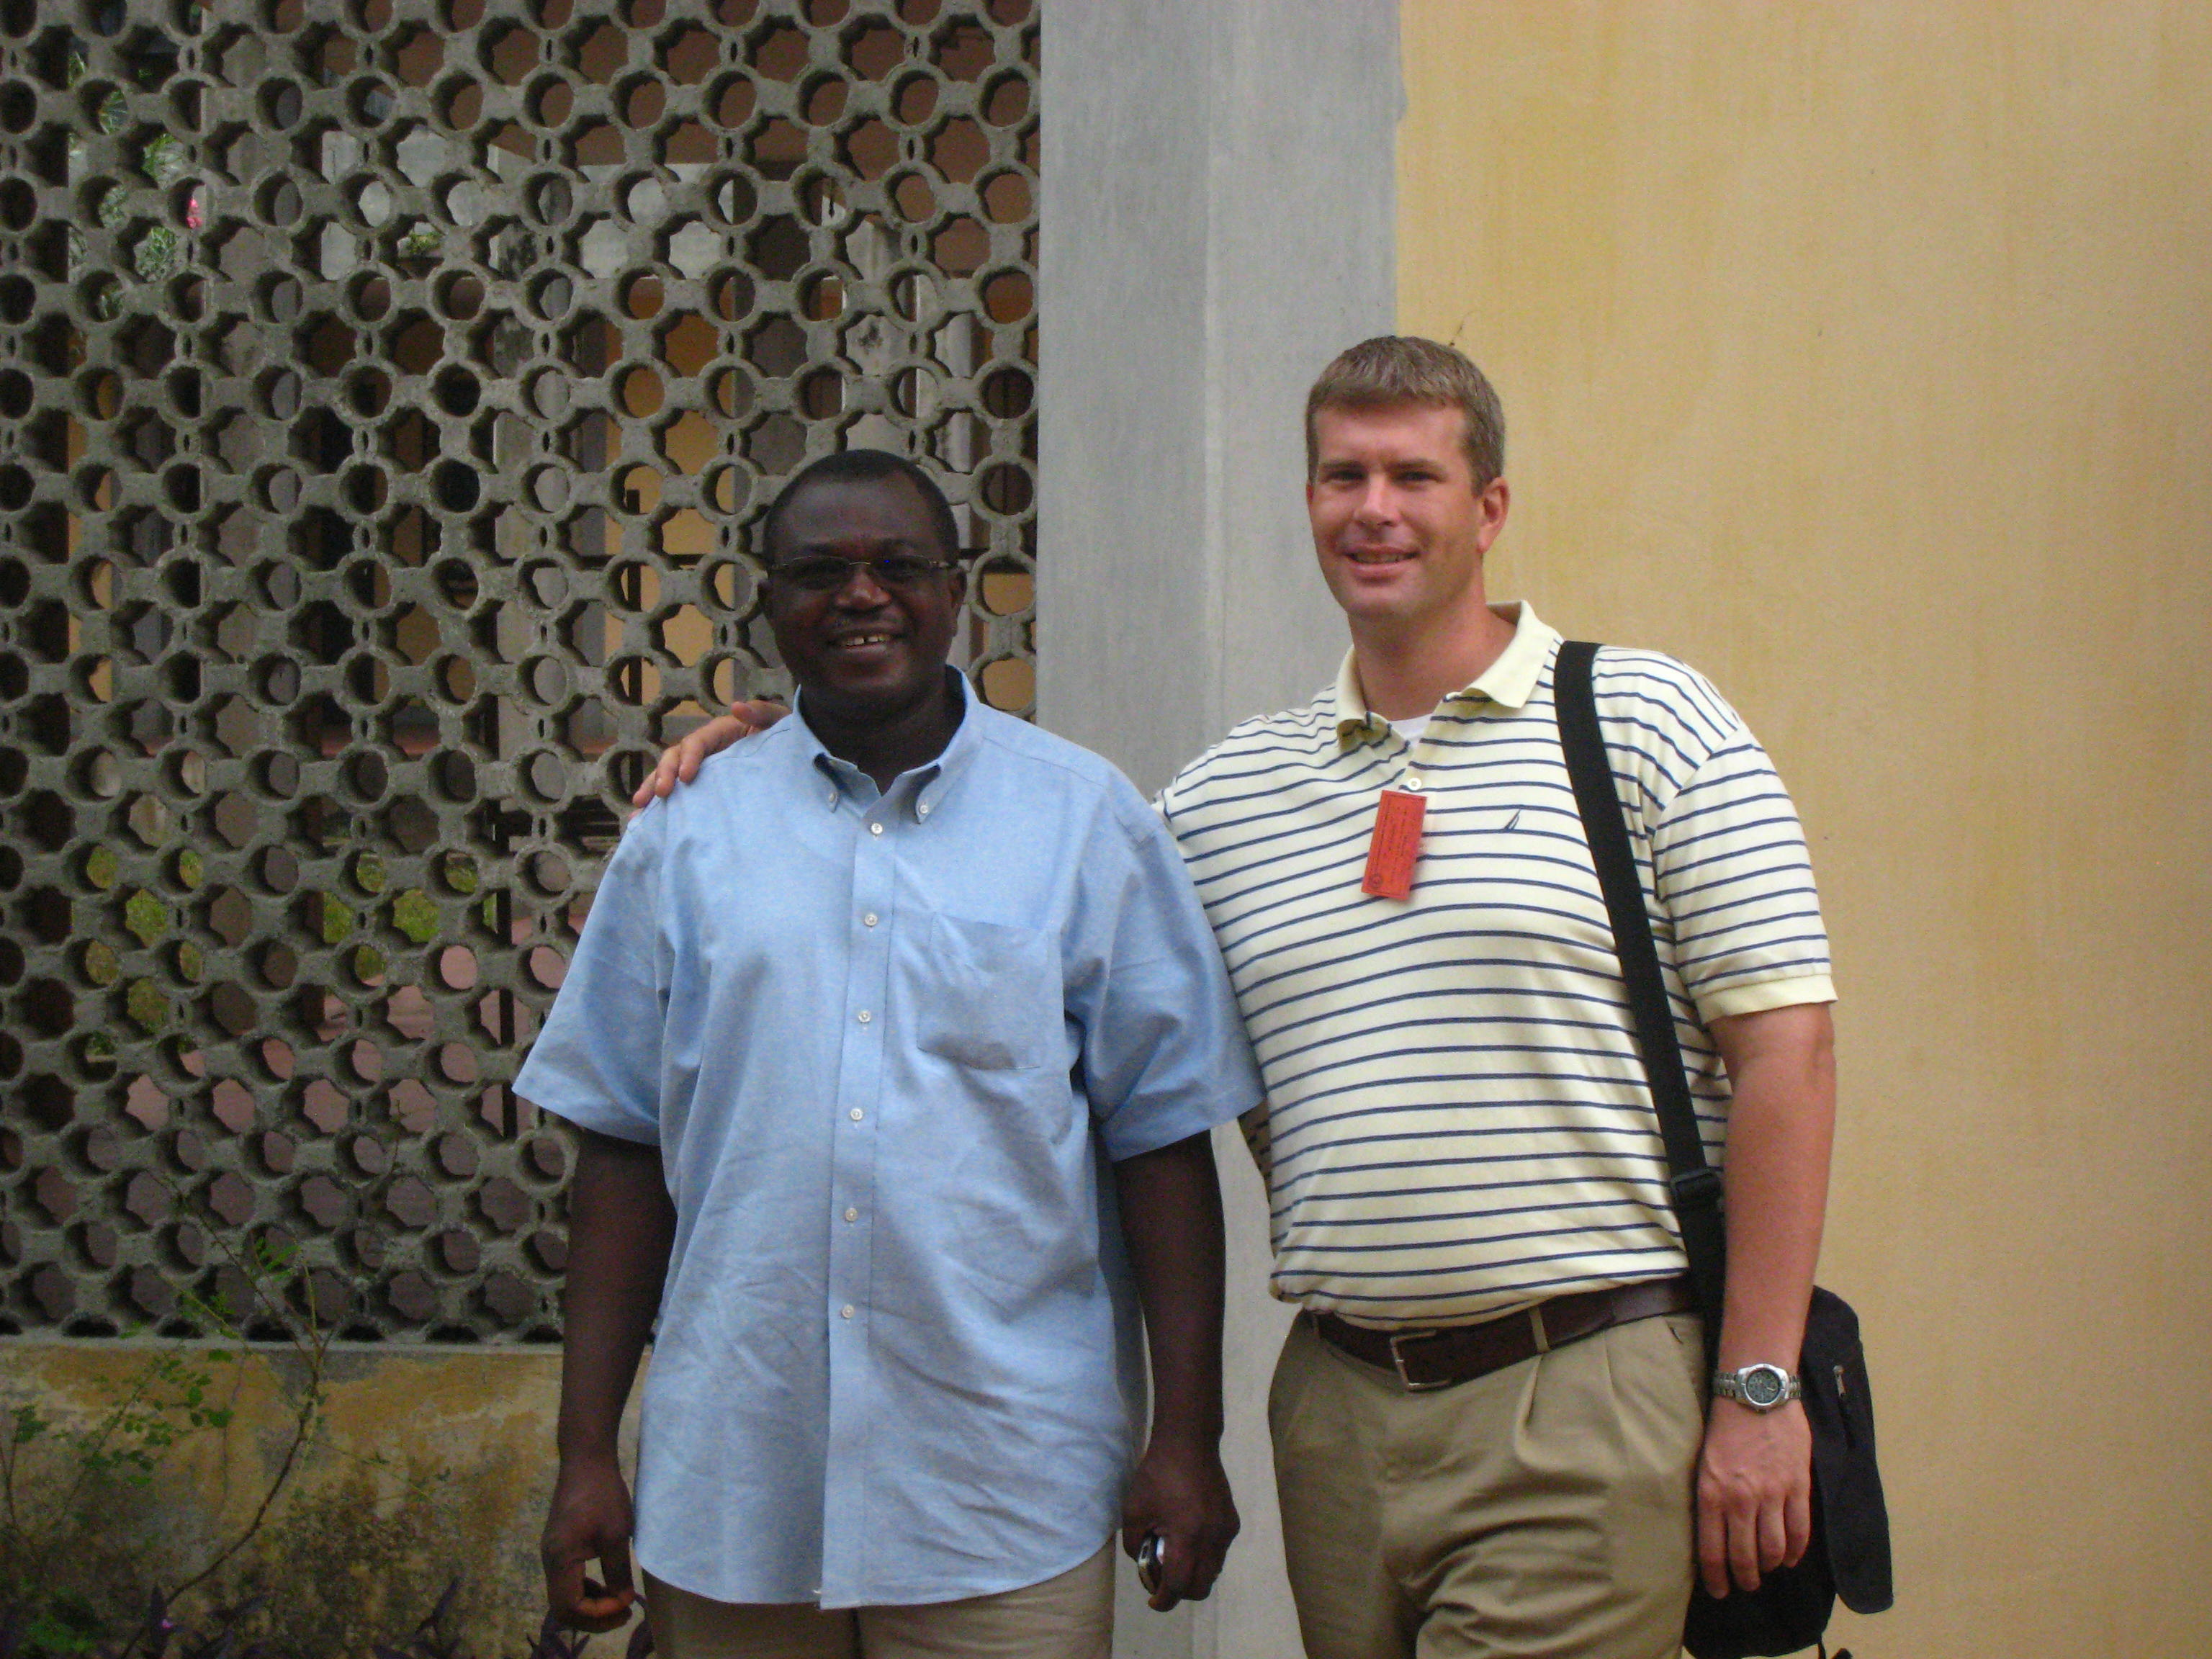 Joshua Heikkila (right) is with the Rev. Dr. Kossi Ayedze, who received his PhD from Princeton Seminary and was principal of the EEPT seminary in Atakpame at the time of his death in 2014. He was dedicated to the improvement of the school and to the well-being of the students educated there.